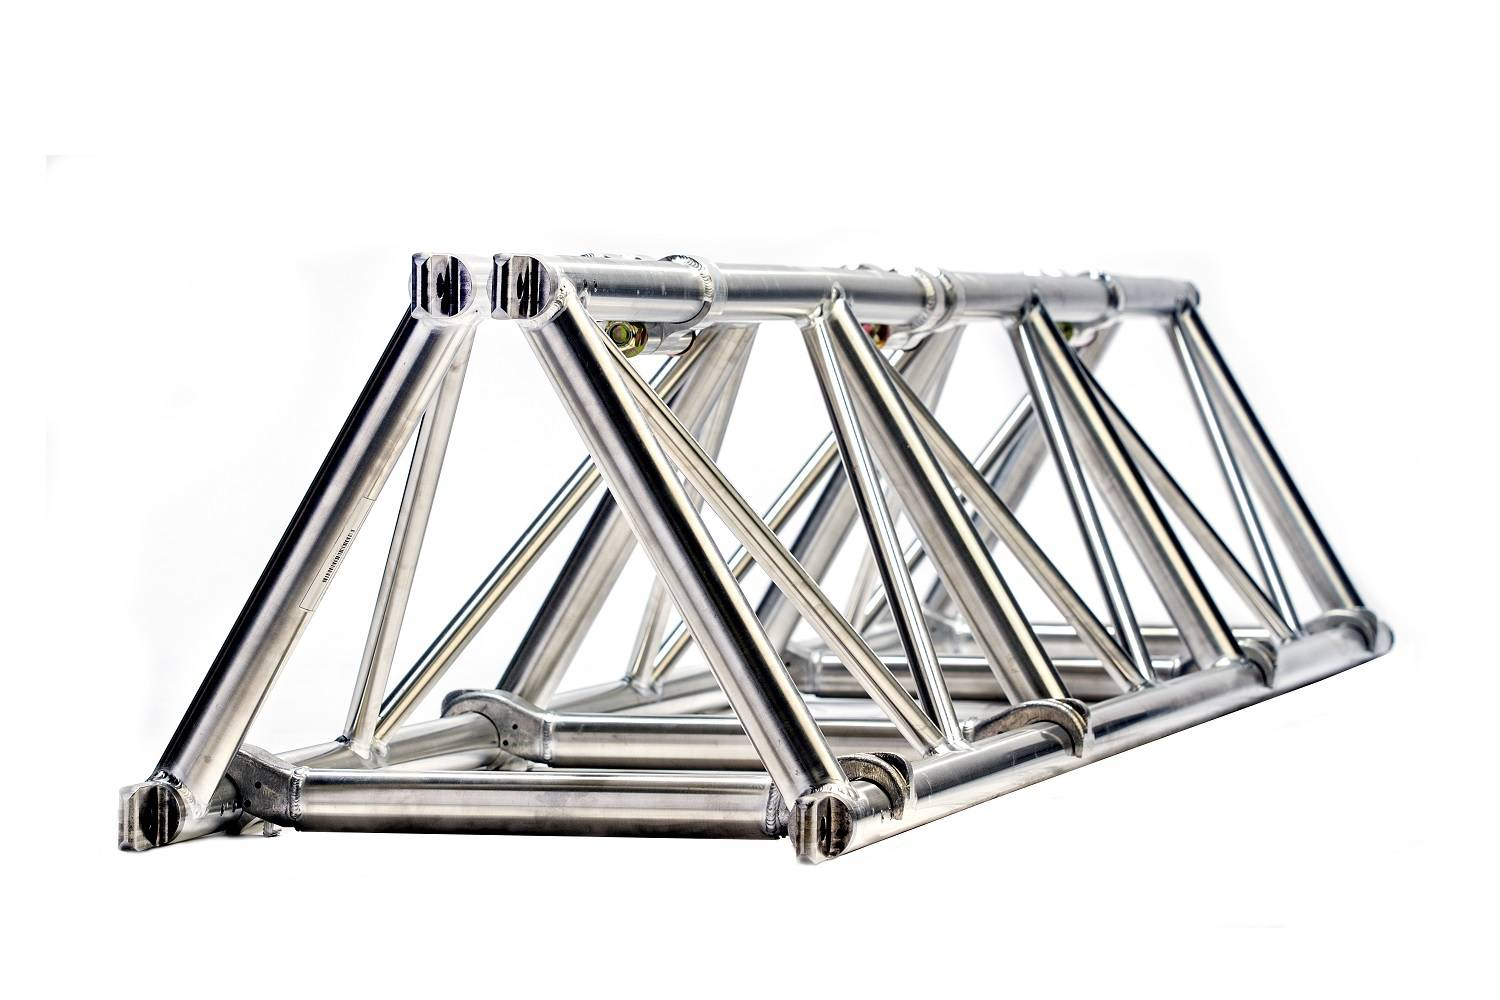 Folding triangle truss 20.5 spigoted